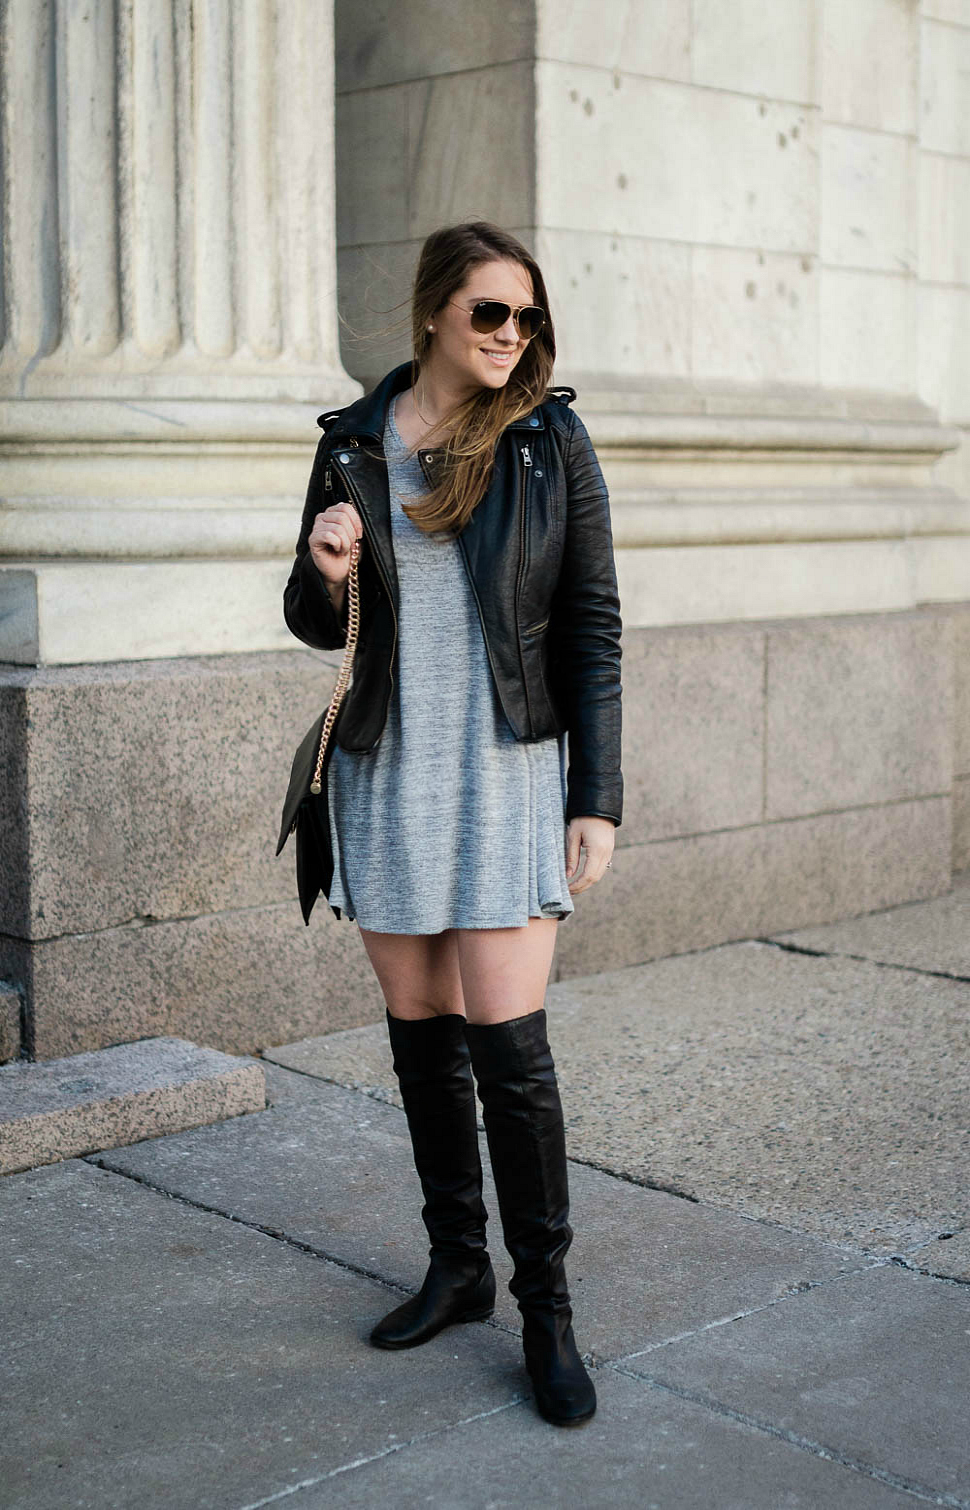 leather-jacket-over-the-knee-boots-ray-ban-canadian-blogger-style-fashion-outfit-rosecitystyleguide-2